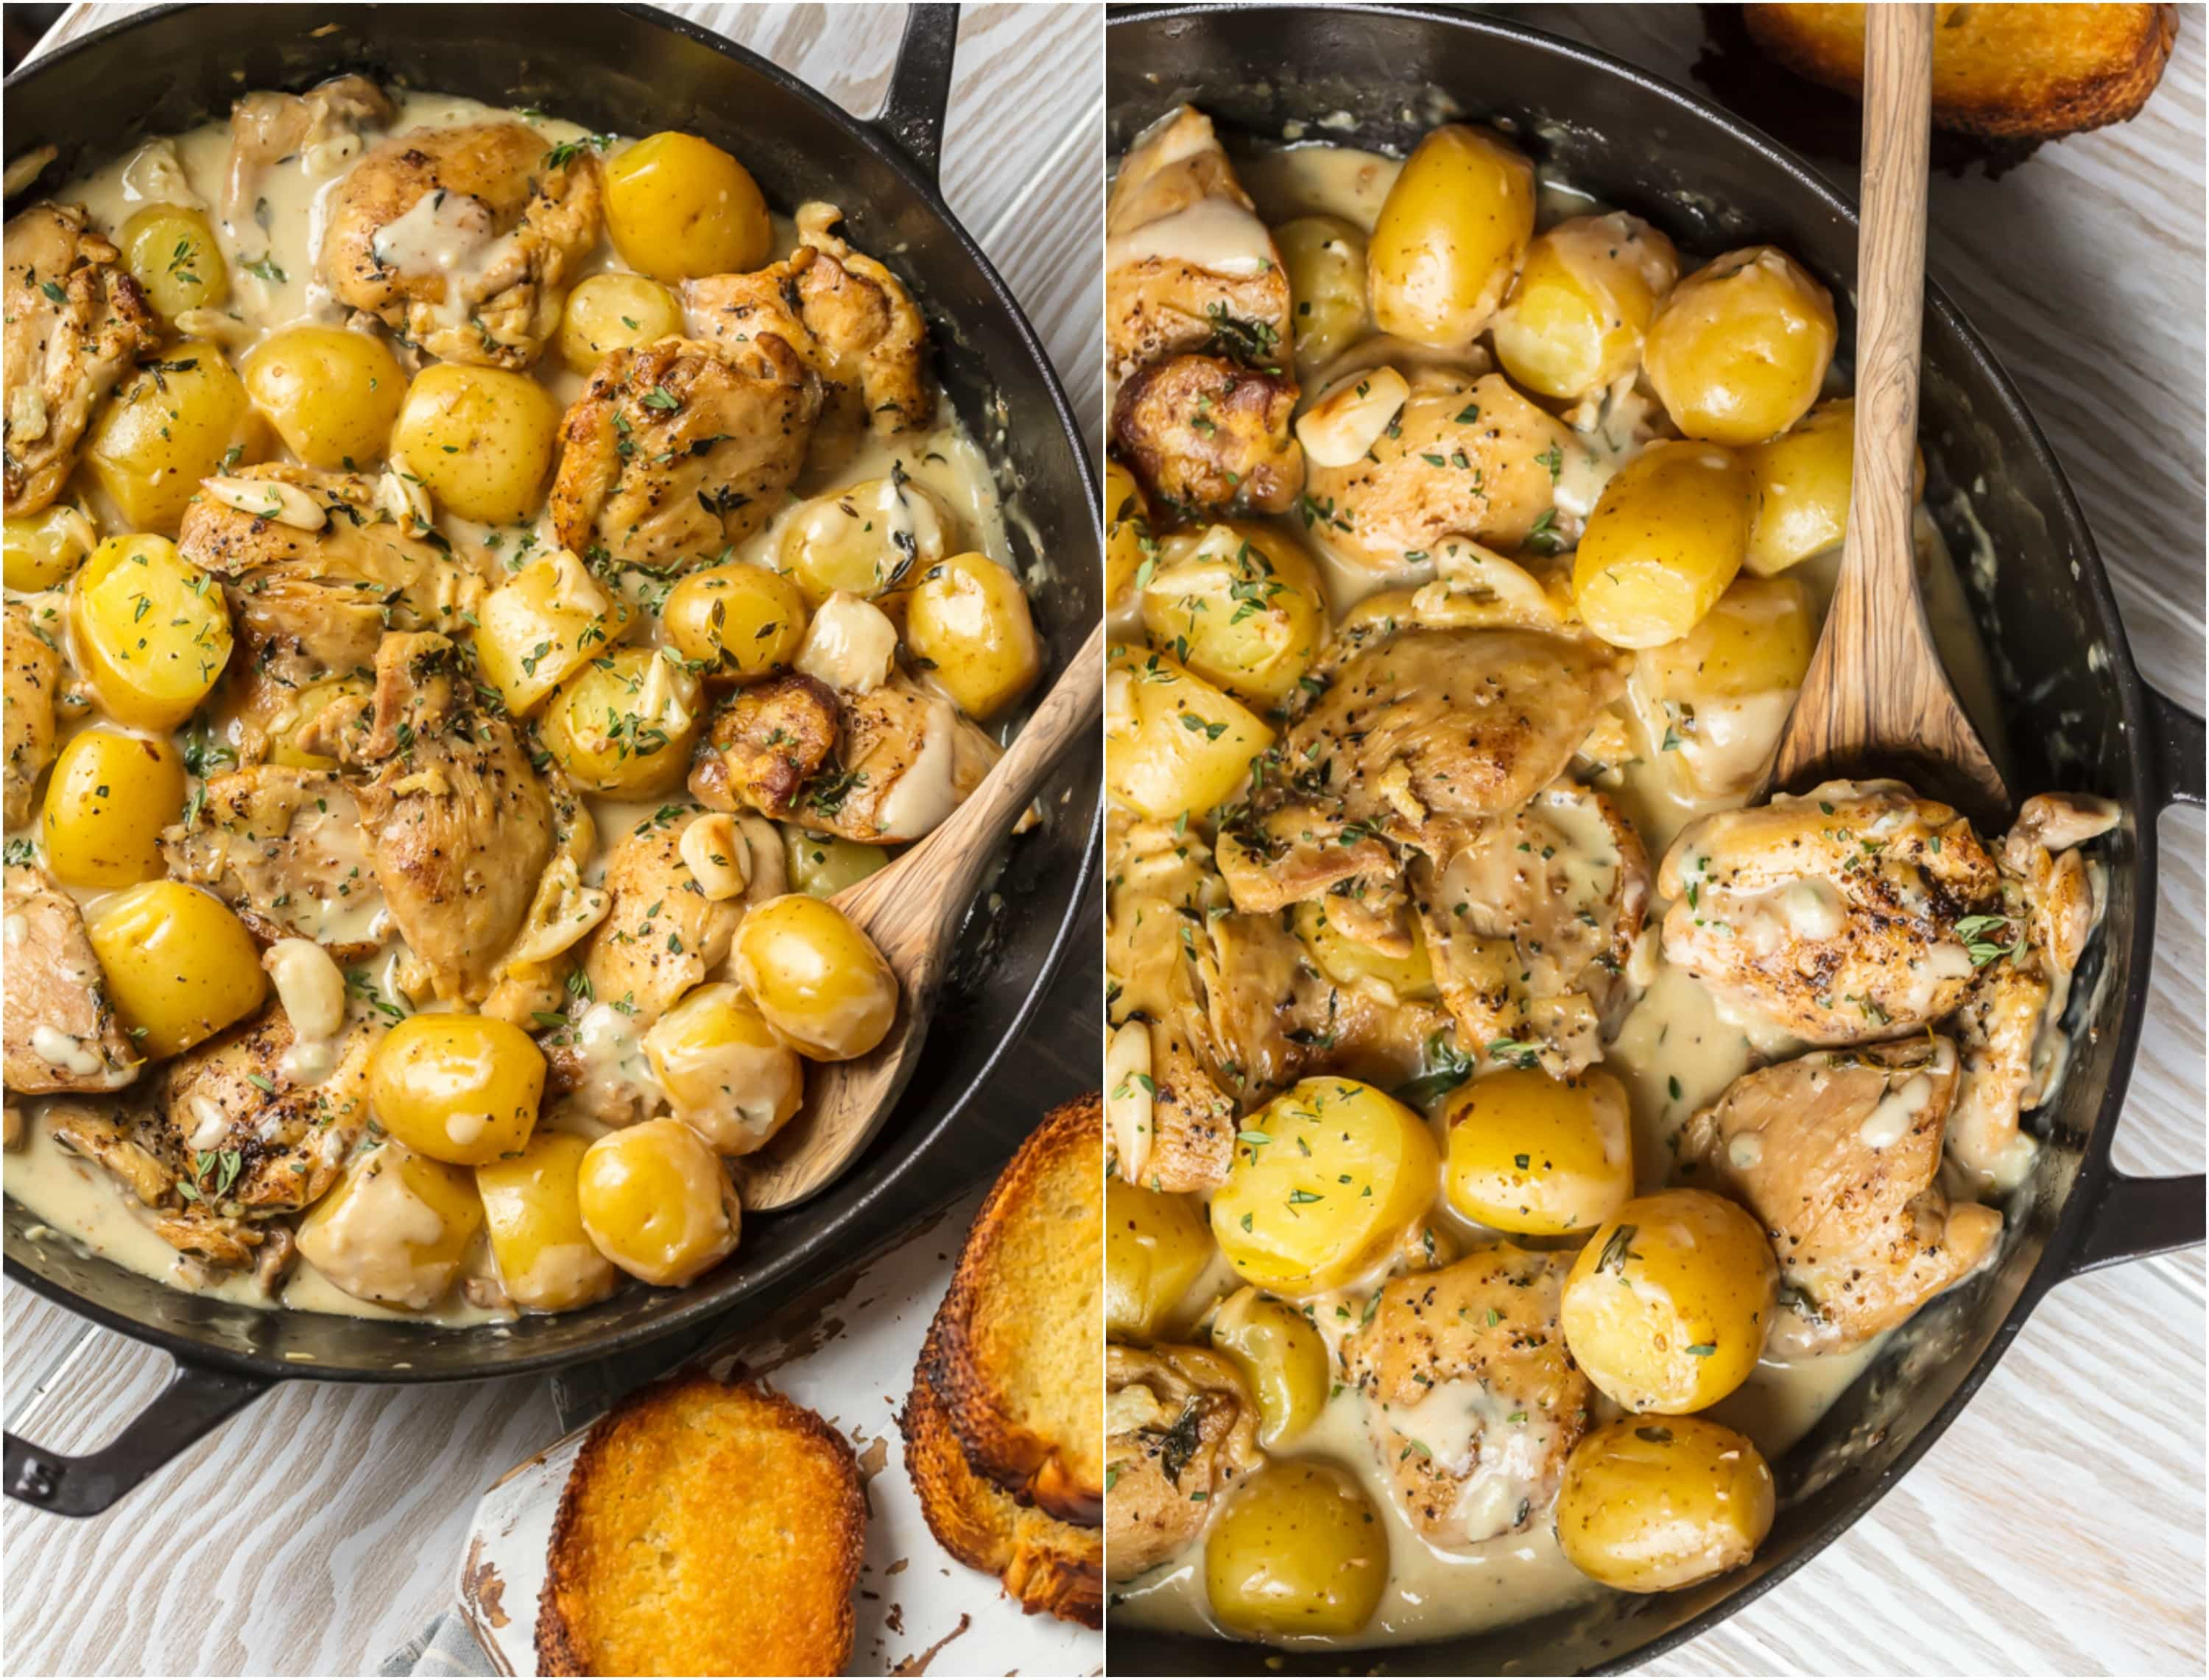 40 Clove Garlic Chicken and Potatoes in skillet